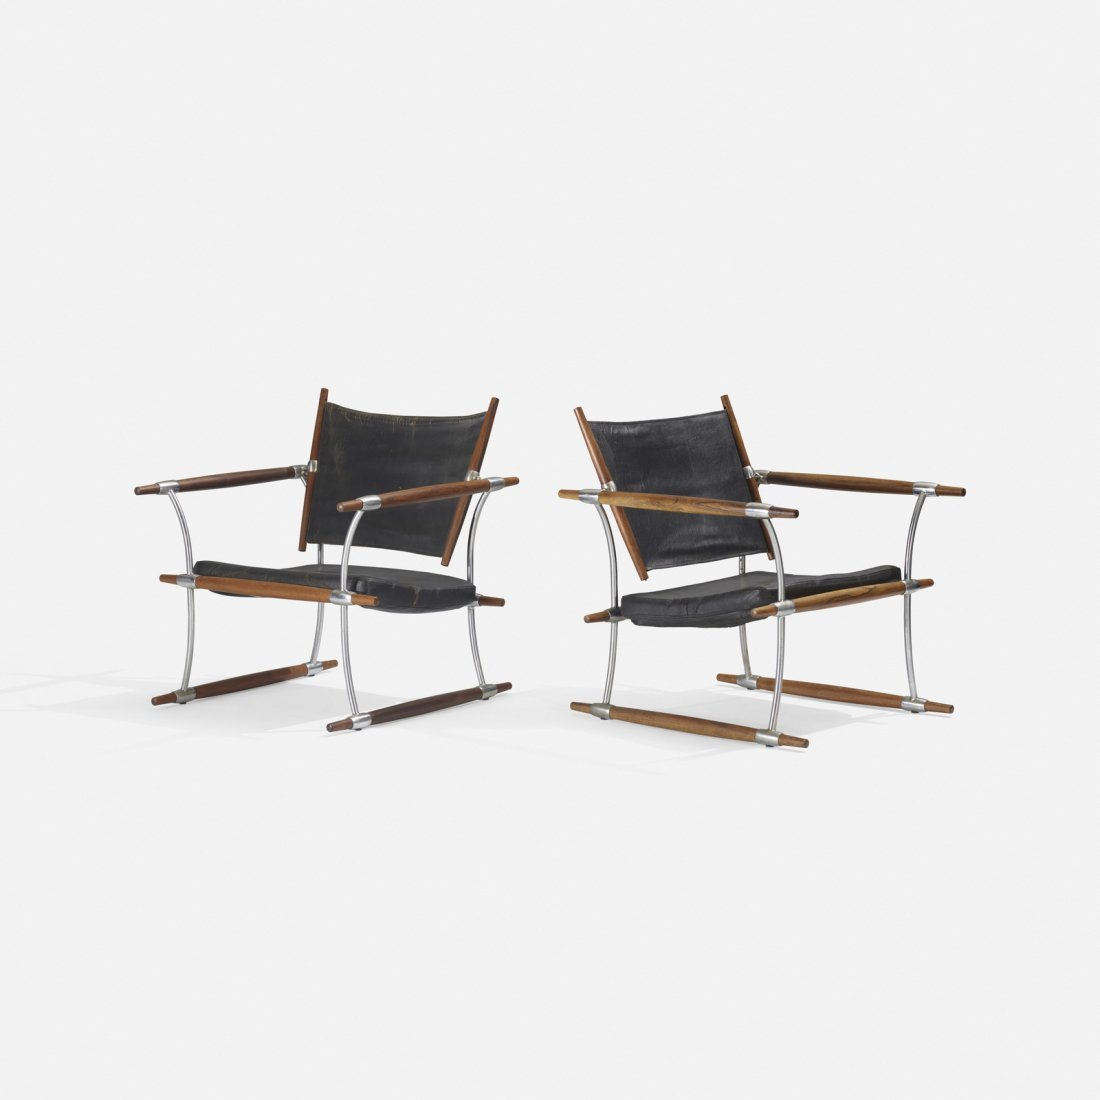 Jens Quistgaard, Stocke lounge chairs, pair - 2